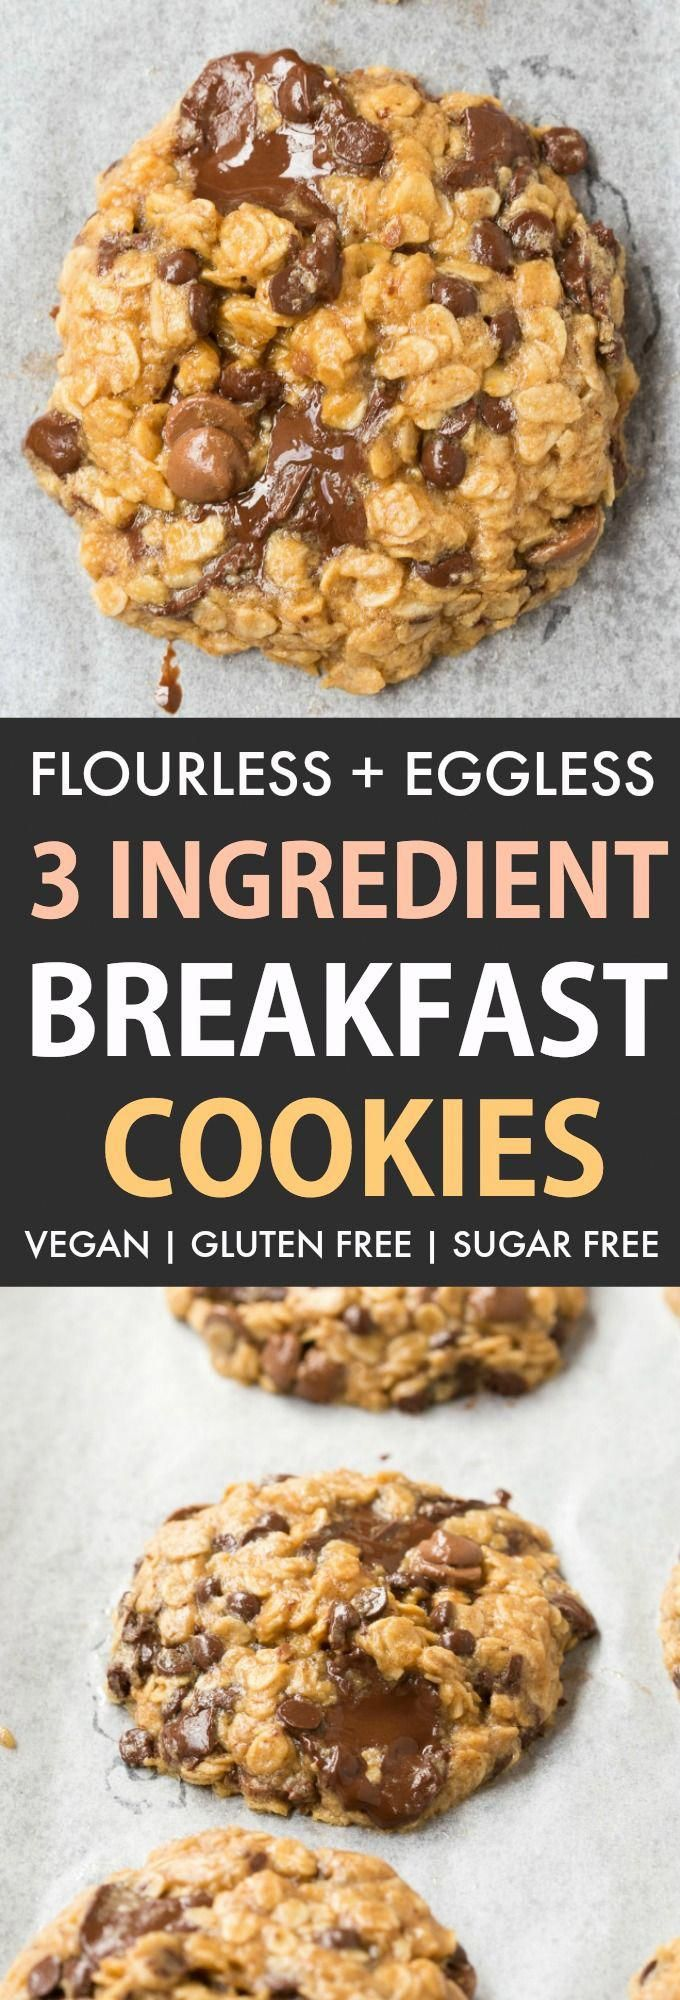 These 3 Ingredient Breakfast Cookies are SO easy and delicious, you only need 12 minutes! No flour, NO eggs and NO butter needed, they are a delicious filling breakfast packed with oatmeal, peanut butter and can be made with or without banana!